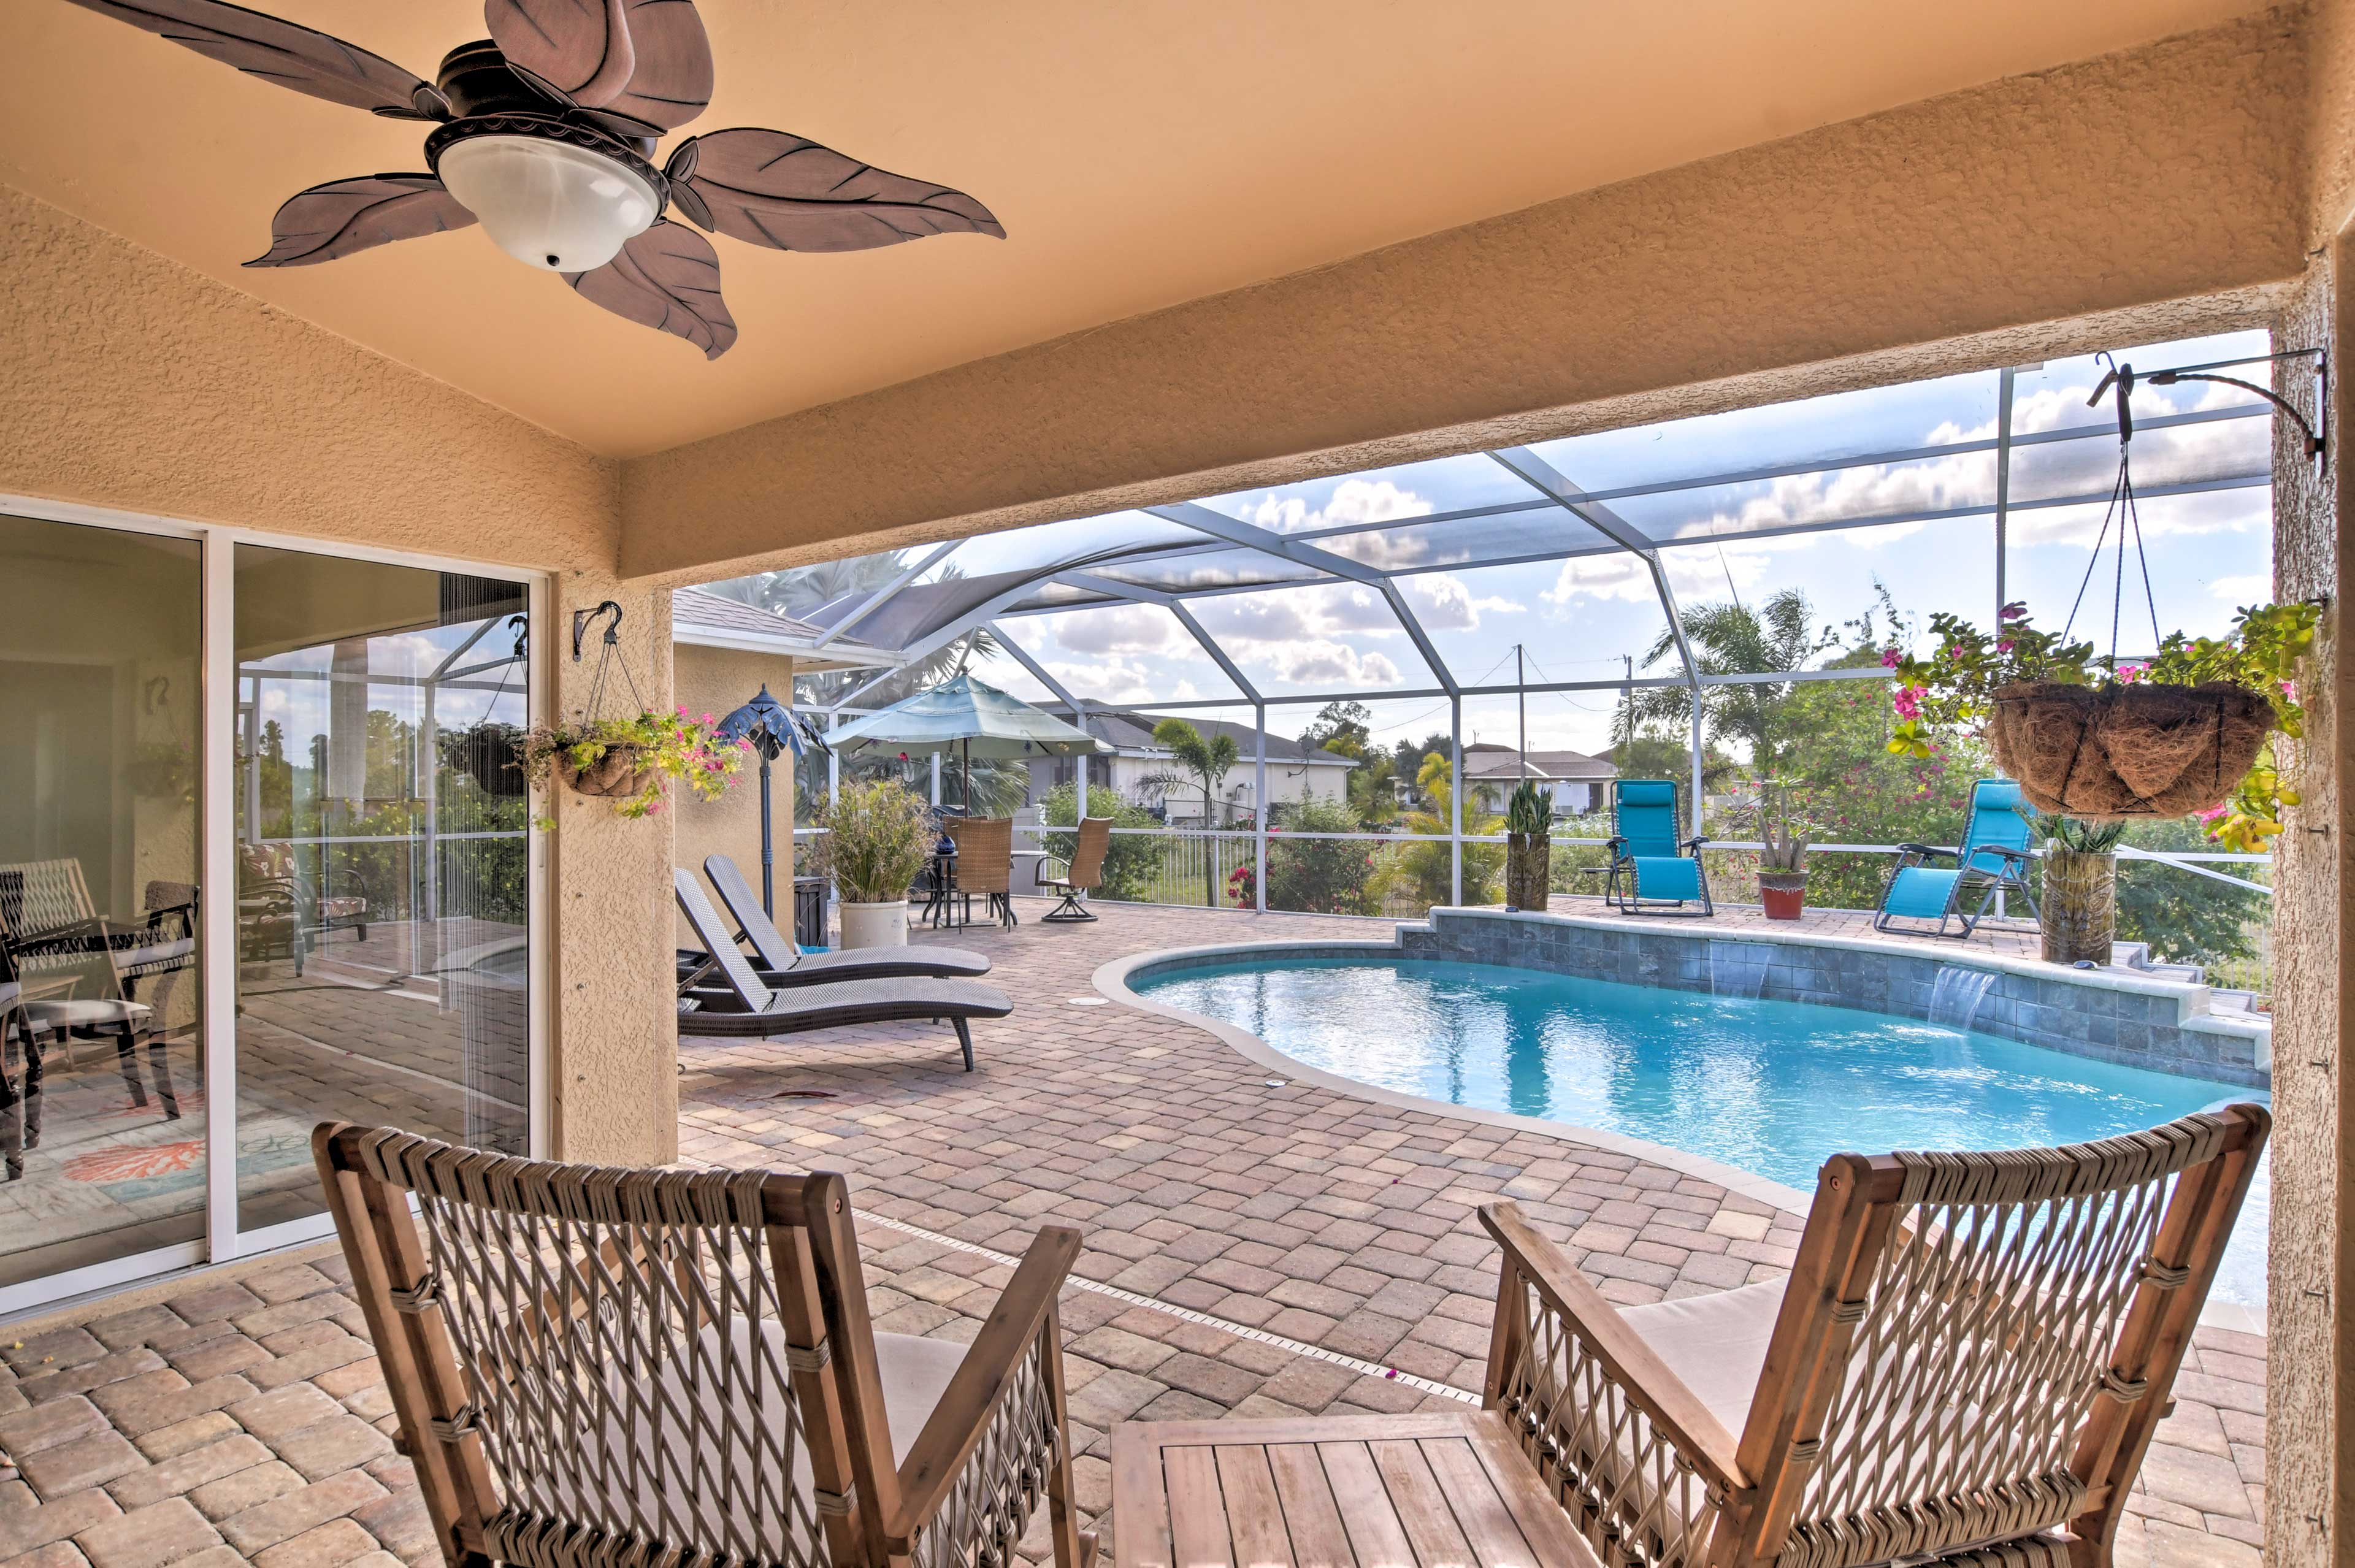 Sit back and relax while the kiddos splash around the pool.